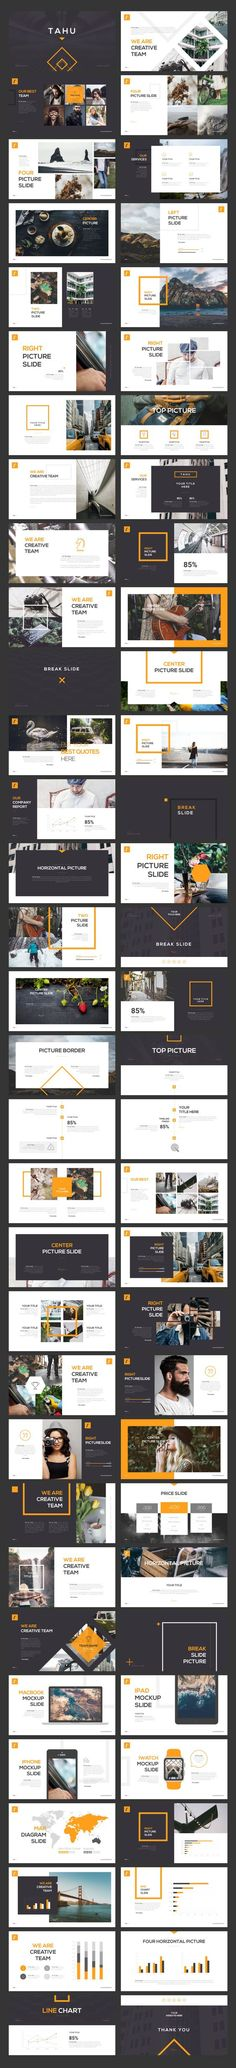 TAHU Keynote Template by Angkalimabelas on @creativemarket: